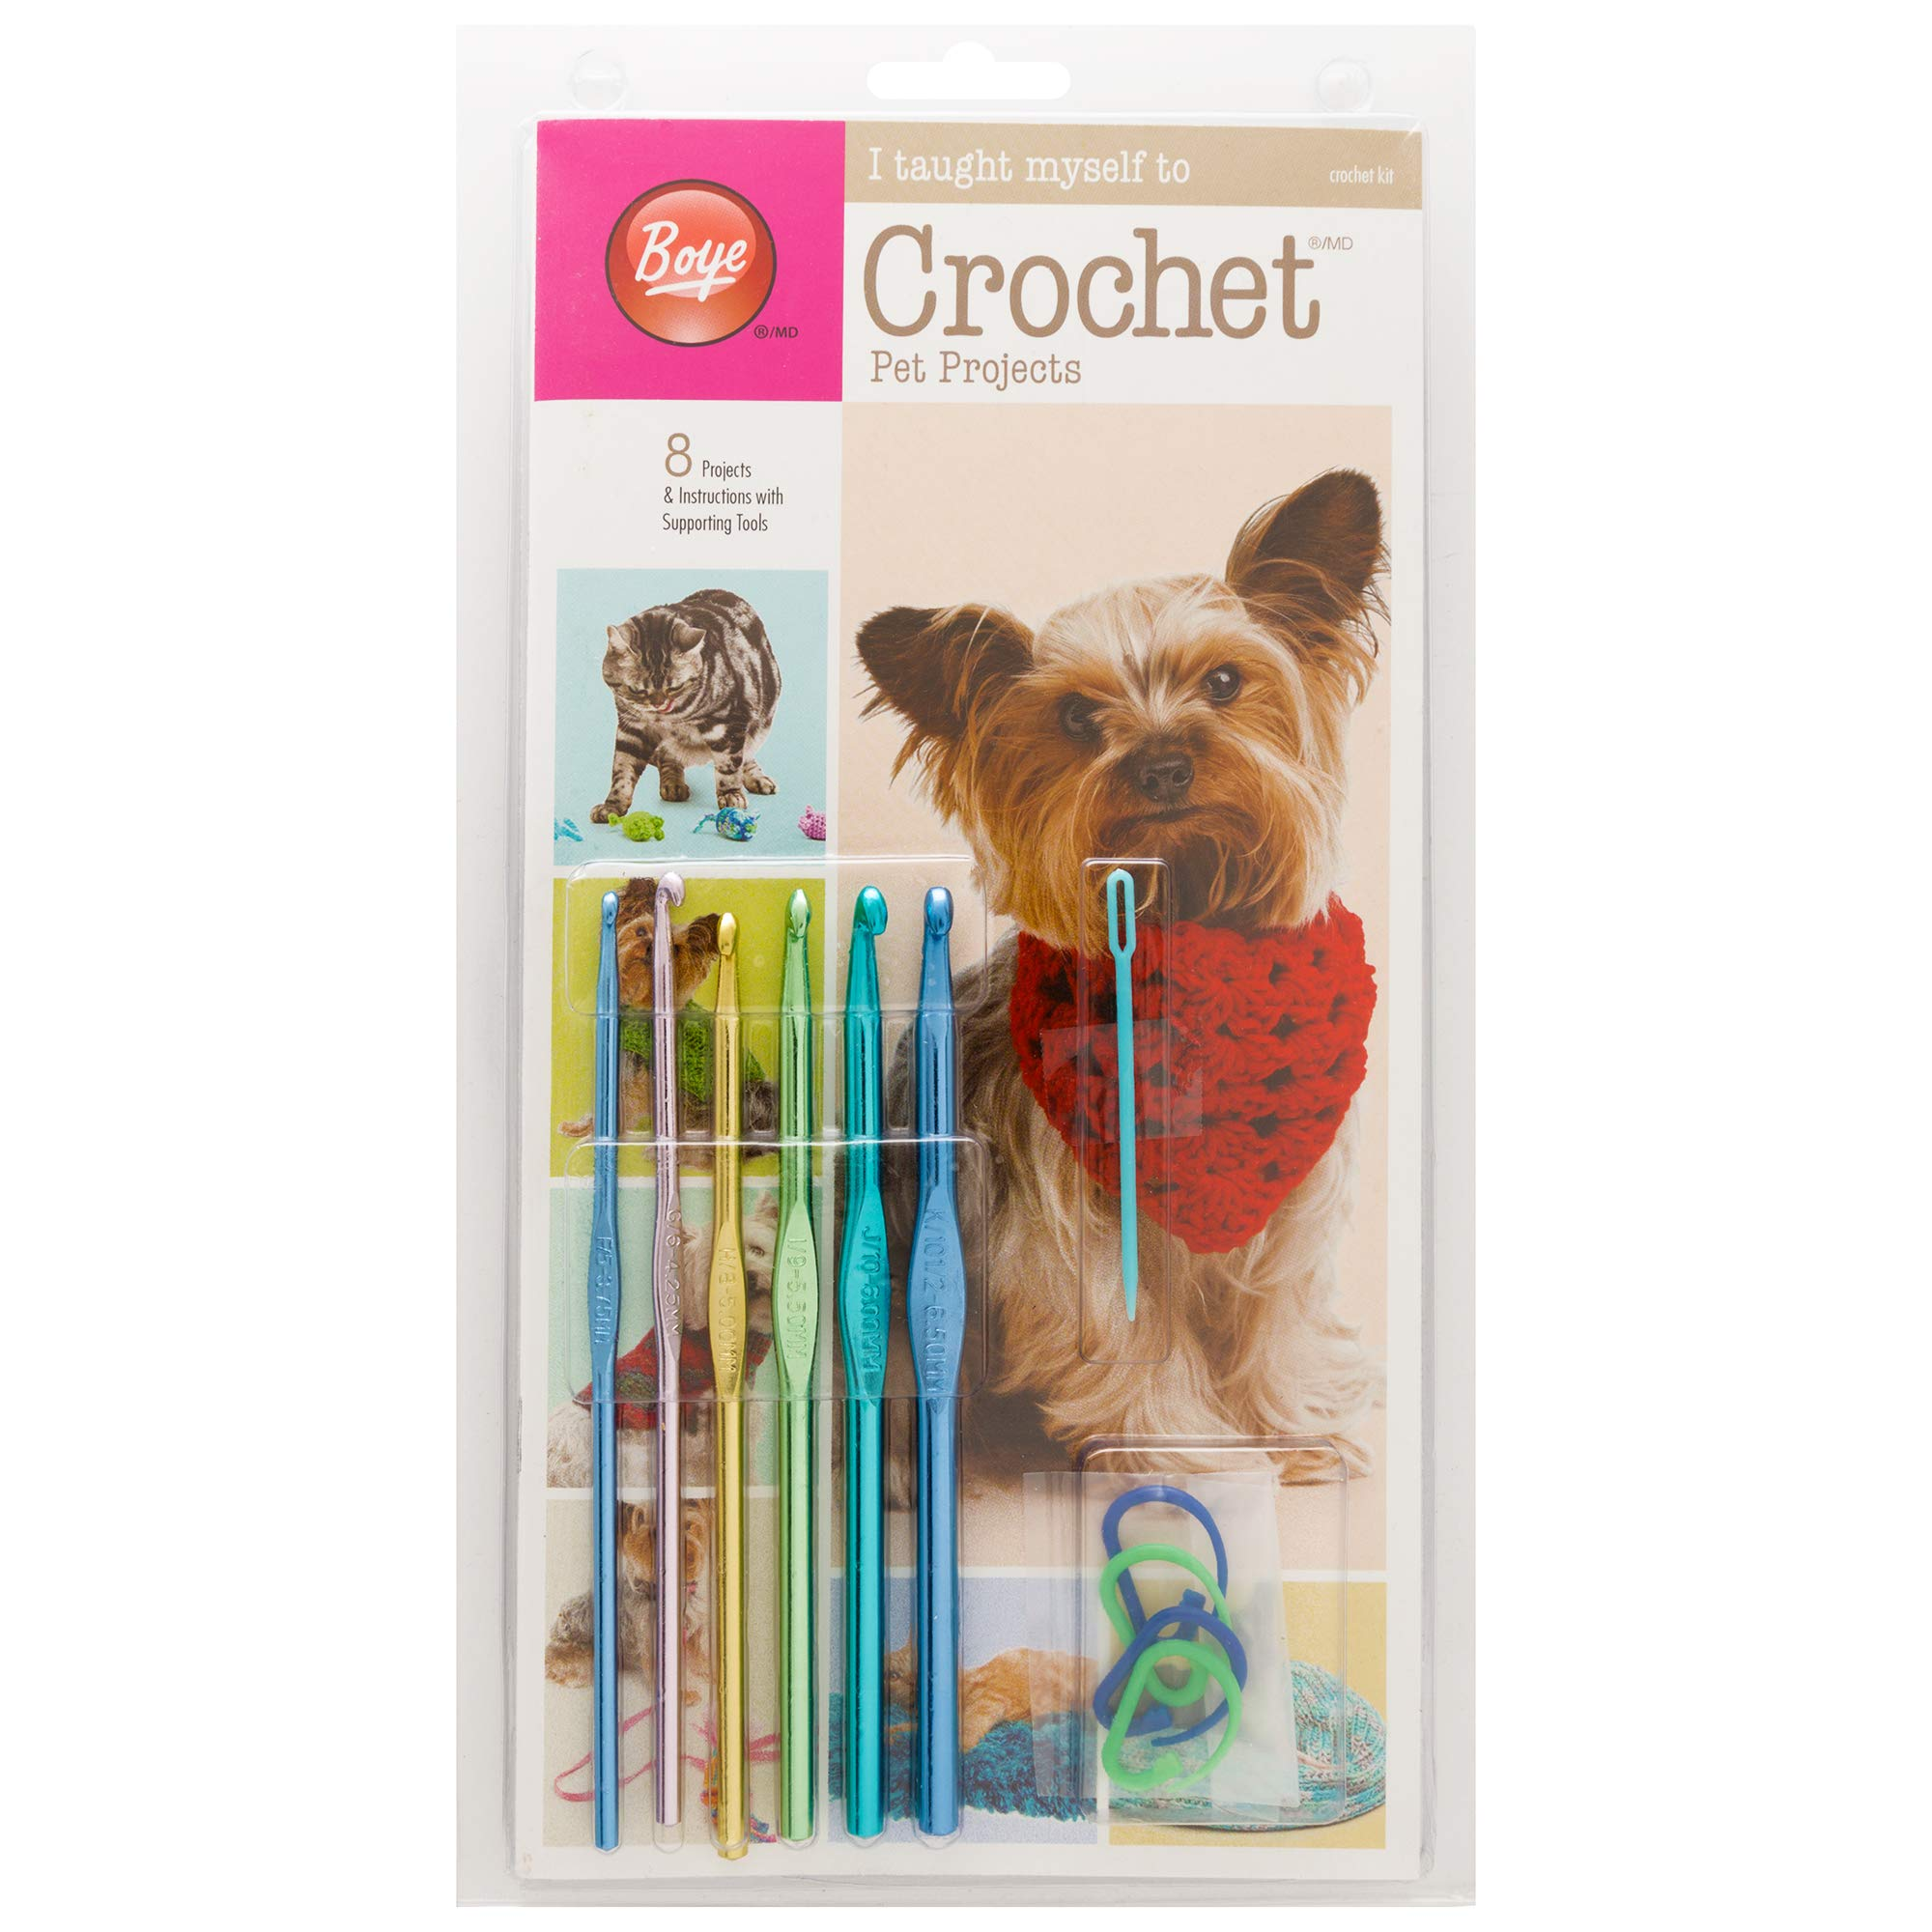 Boye Learn to Crochet Pet Clothing and Accessories Pattern Kit, 8 Projects